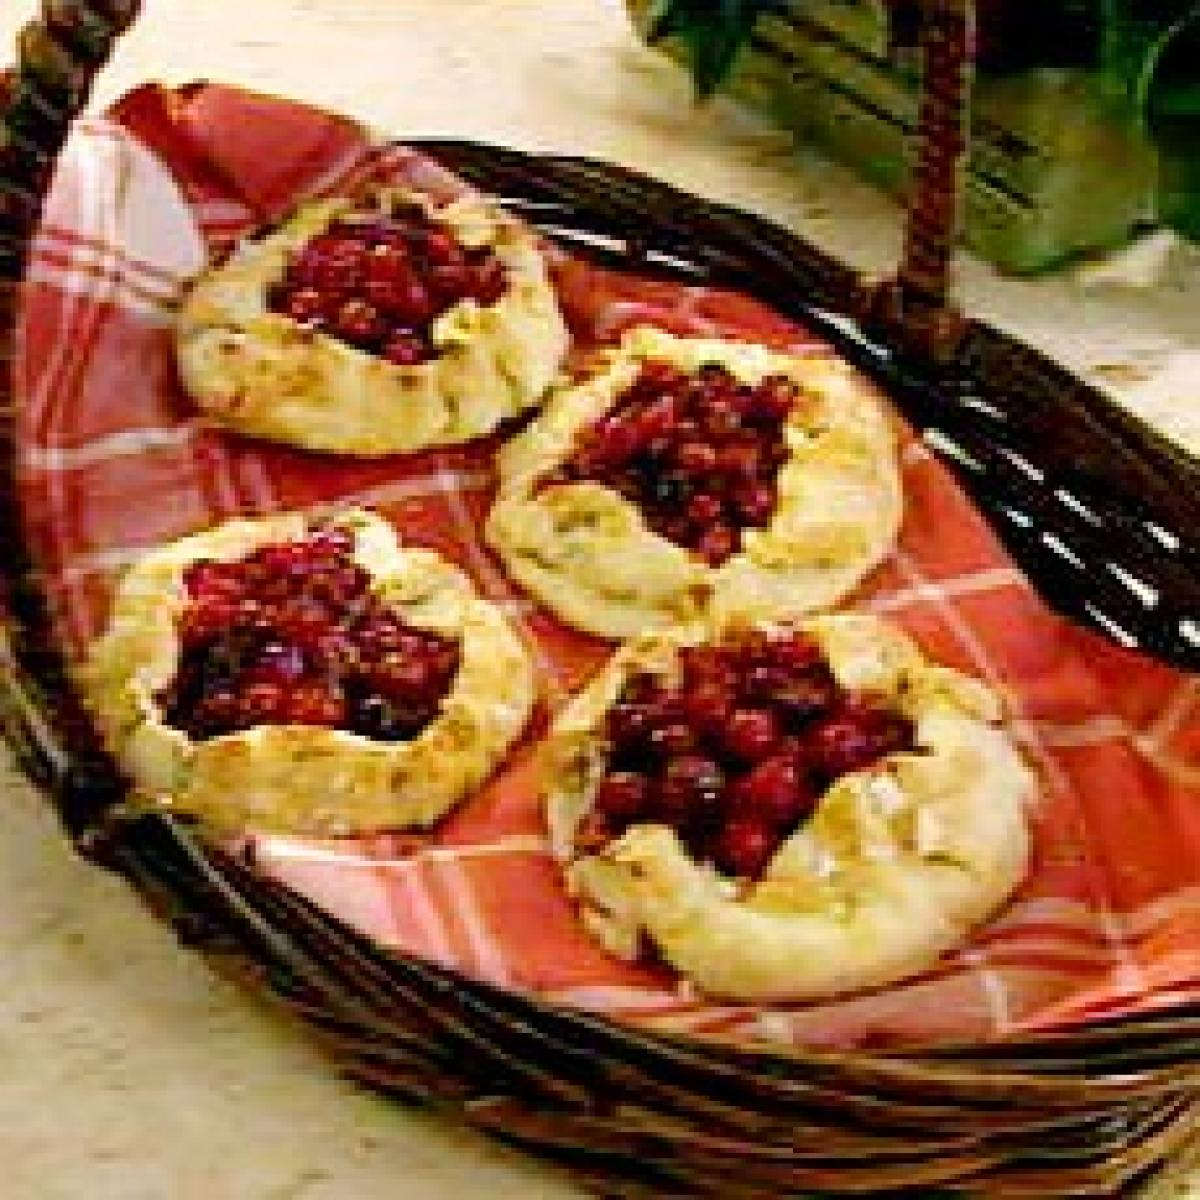 A picture of Delia's Cranberry and Orange One-Crust Pies recipe